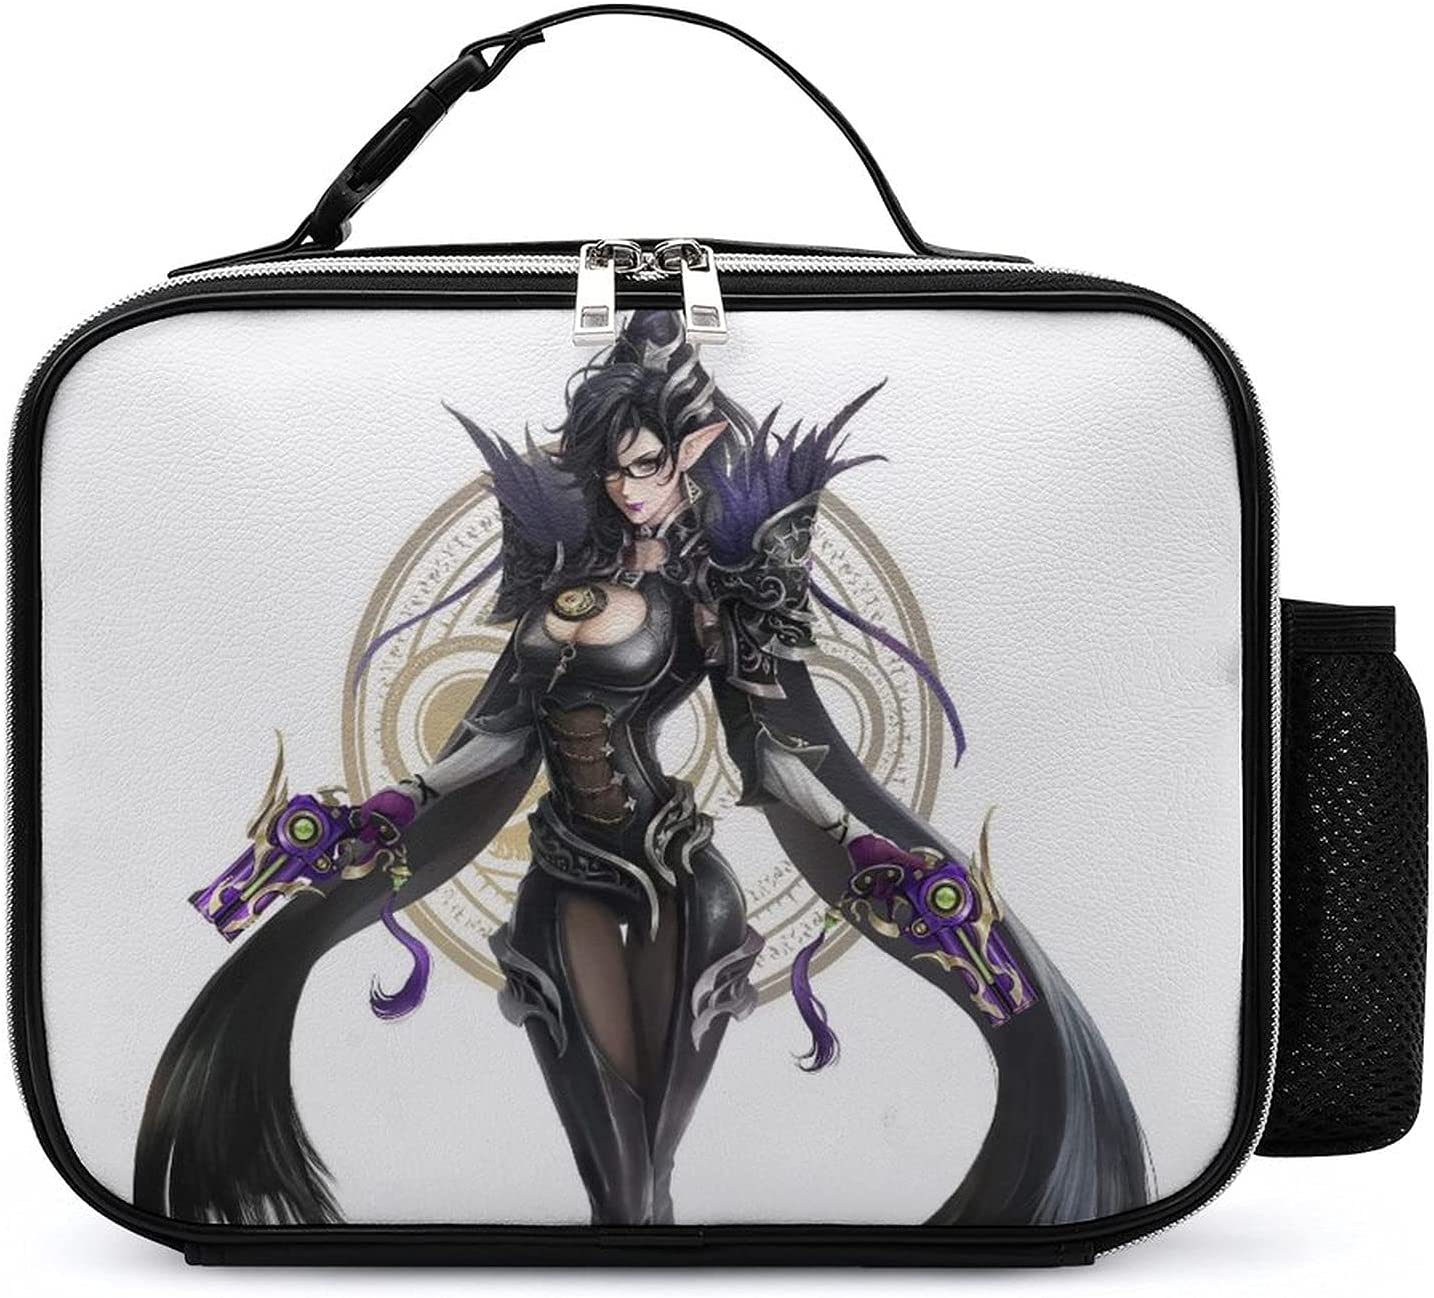 Lunch Boxes Bayonetta Leather Bag All items SEAL limited product in the store Reusable Tote Insulated